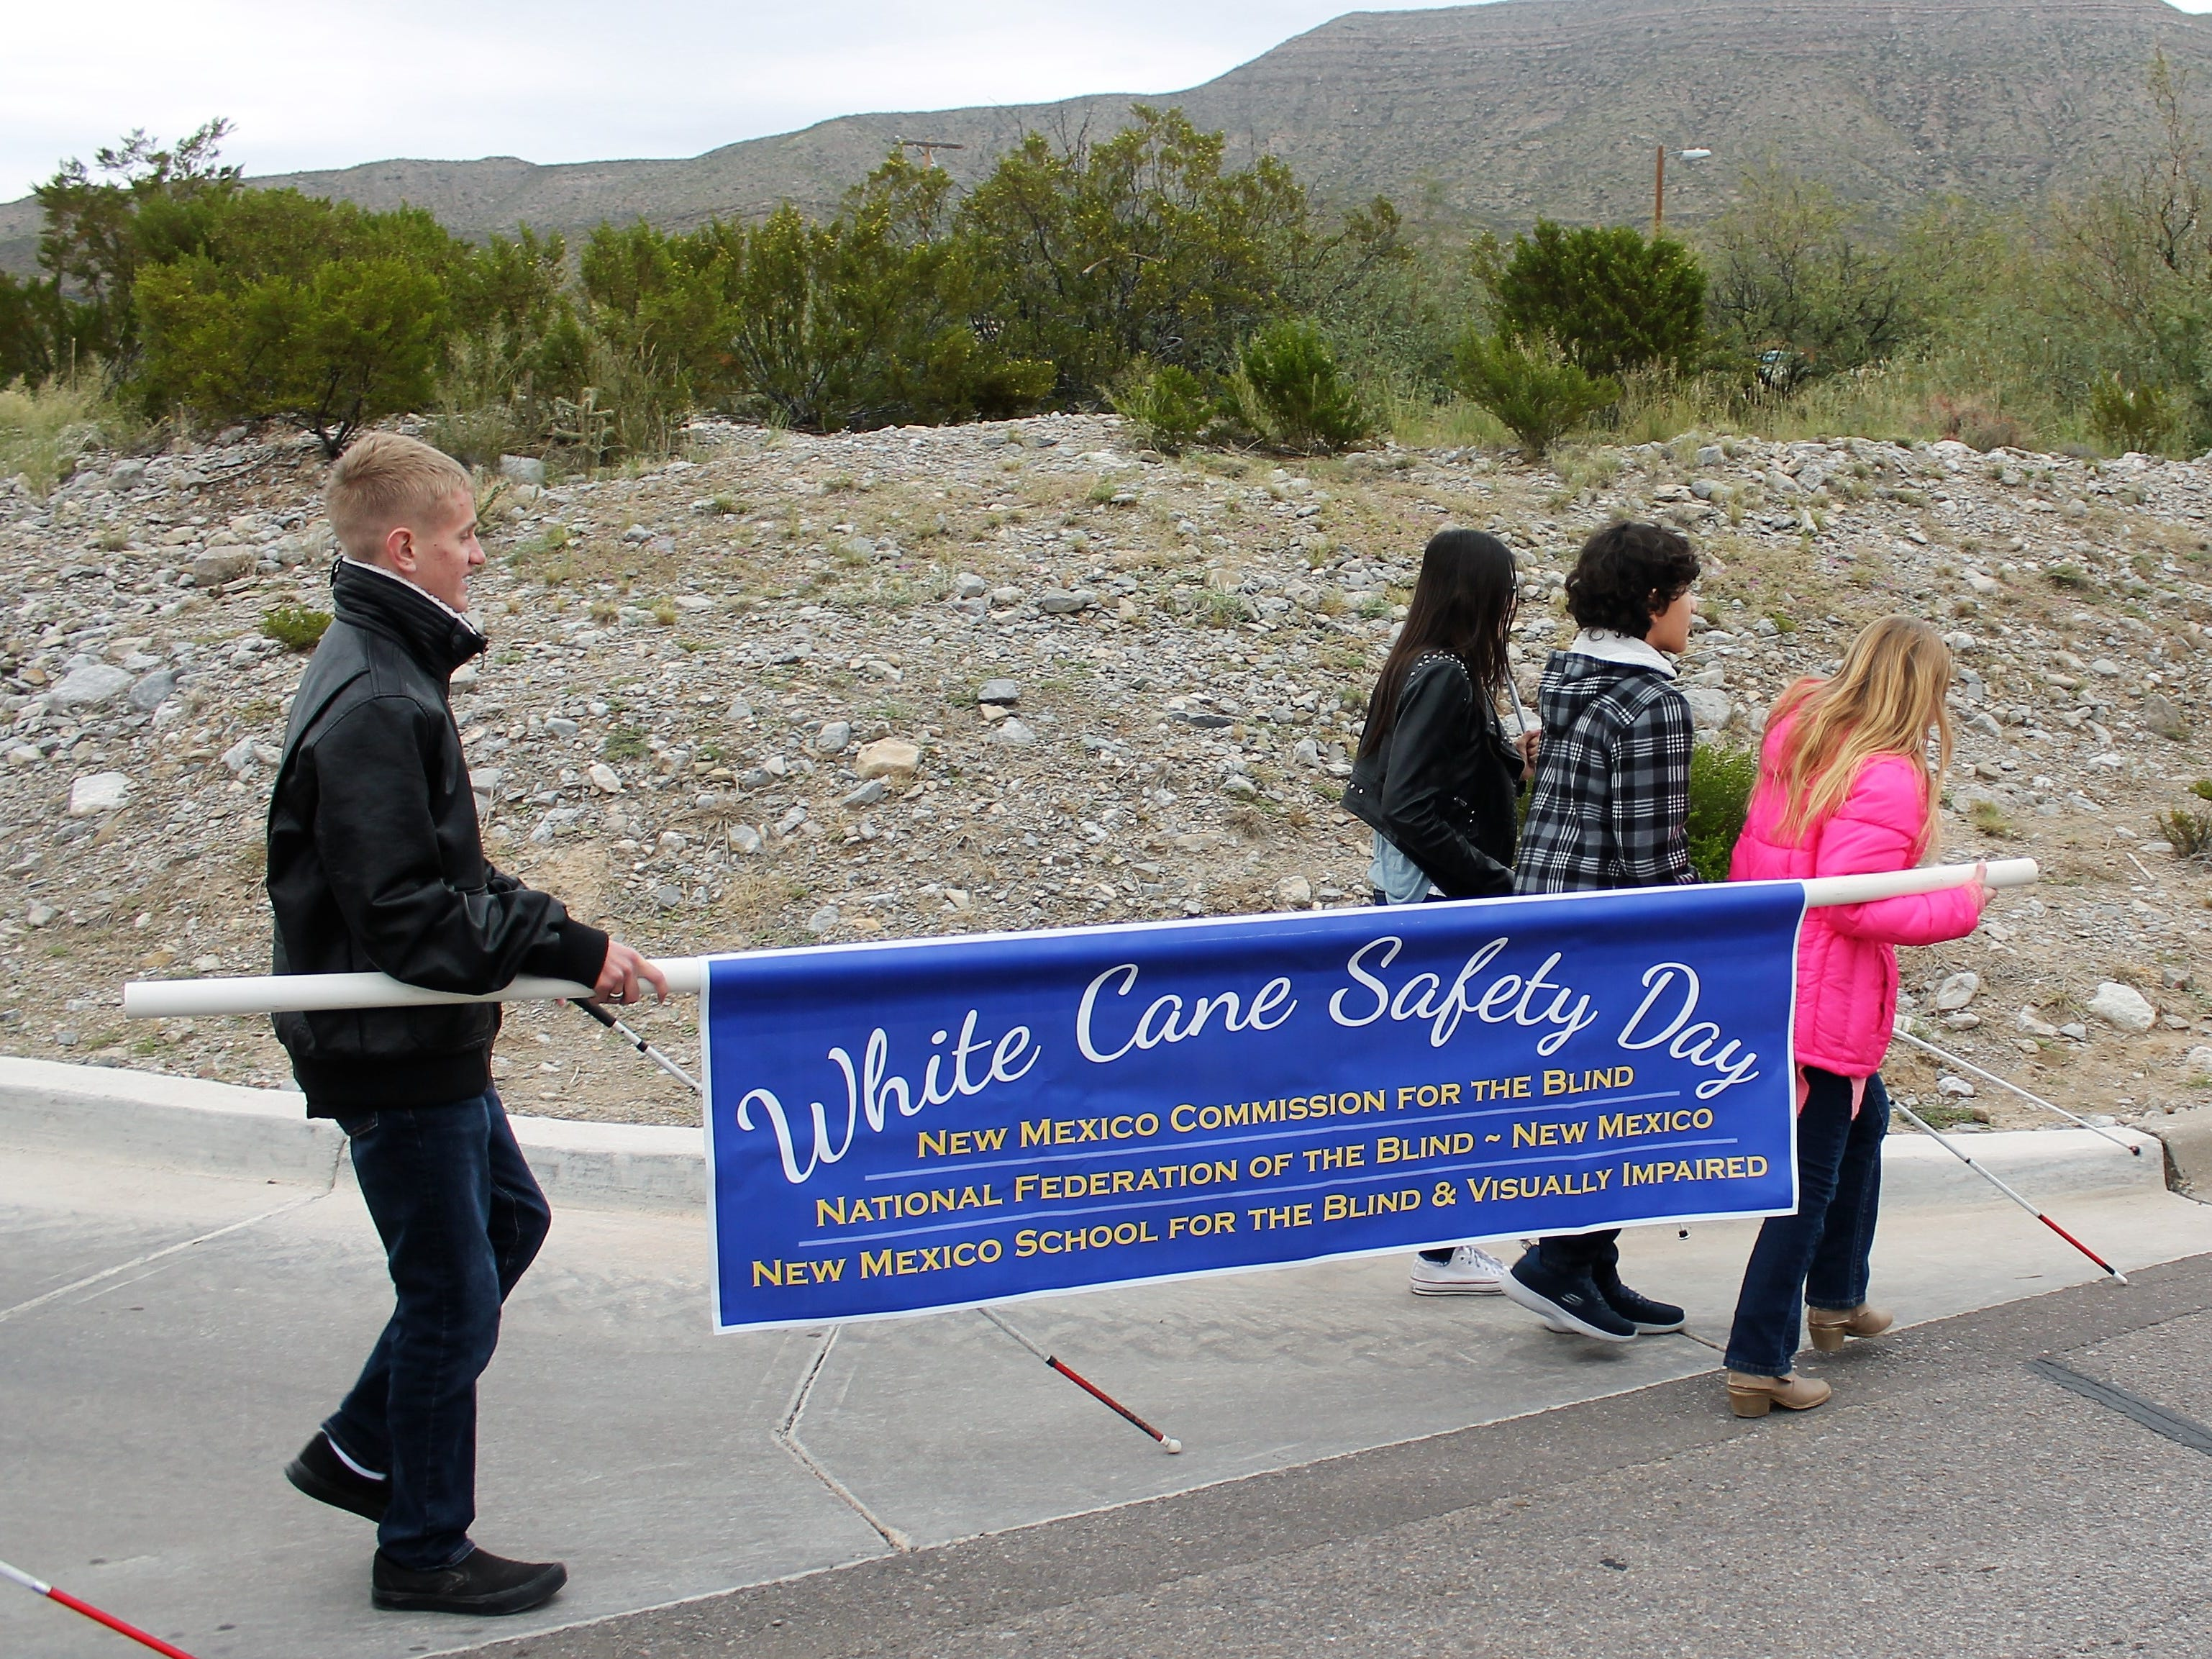 Tuesday marked the annual White Cane Safety Day which began with the White Cane Walk from the Wal-Mart Neighborhood Market on Indian Wells to the Rehovec Theatre on the New Mexico State University-Alamogordo campus.